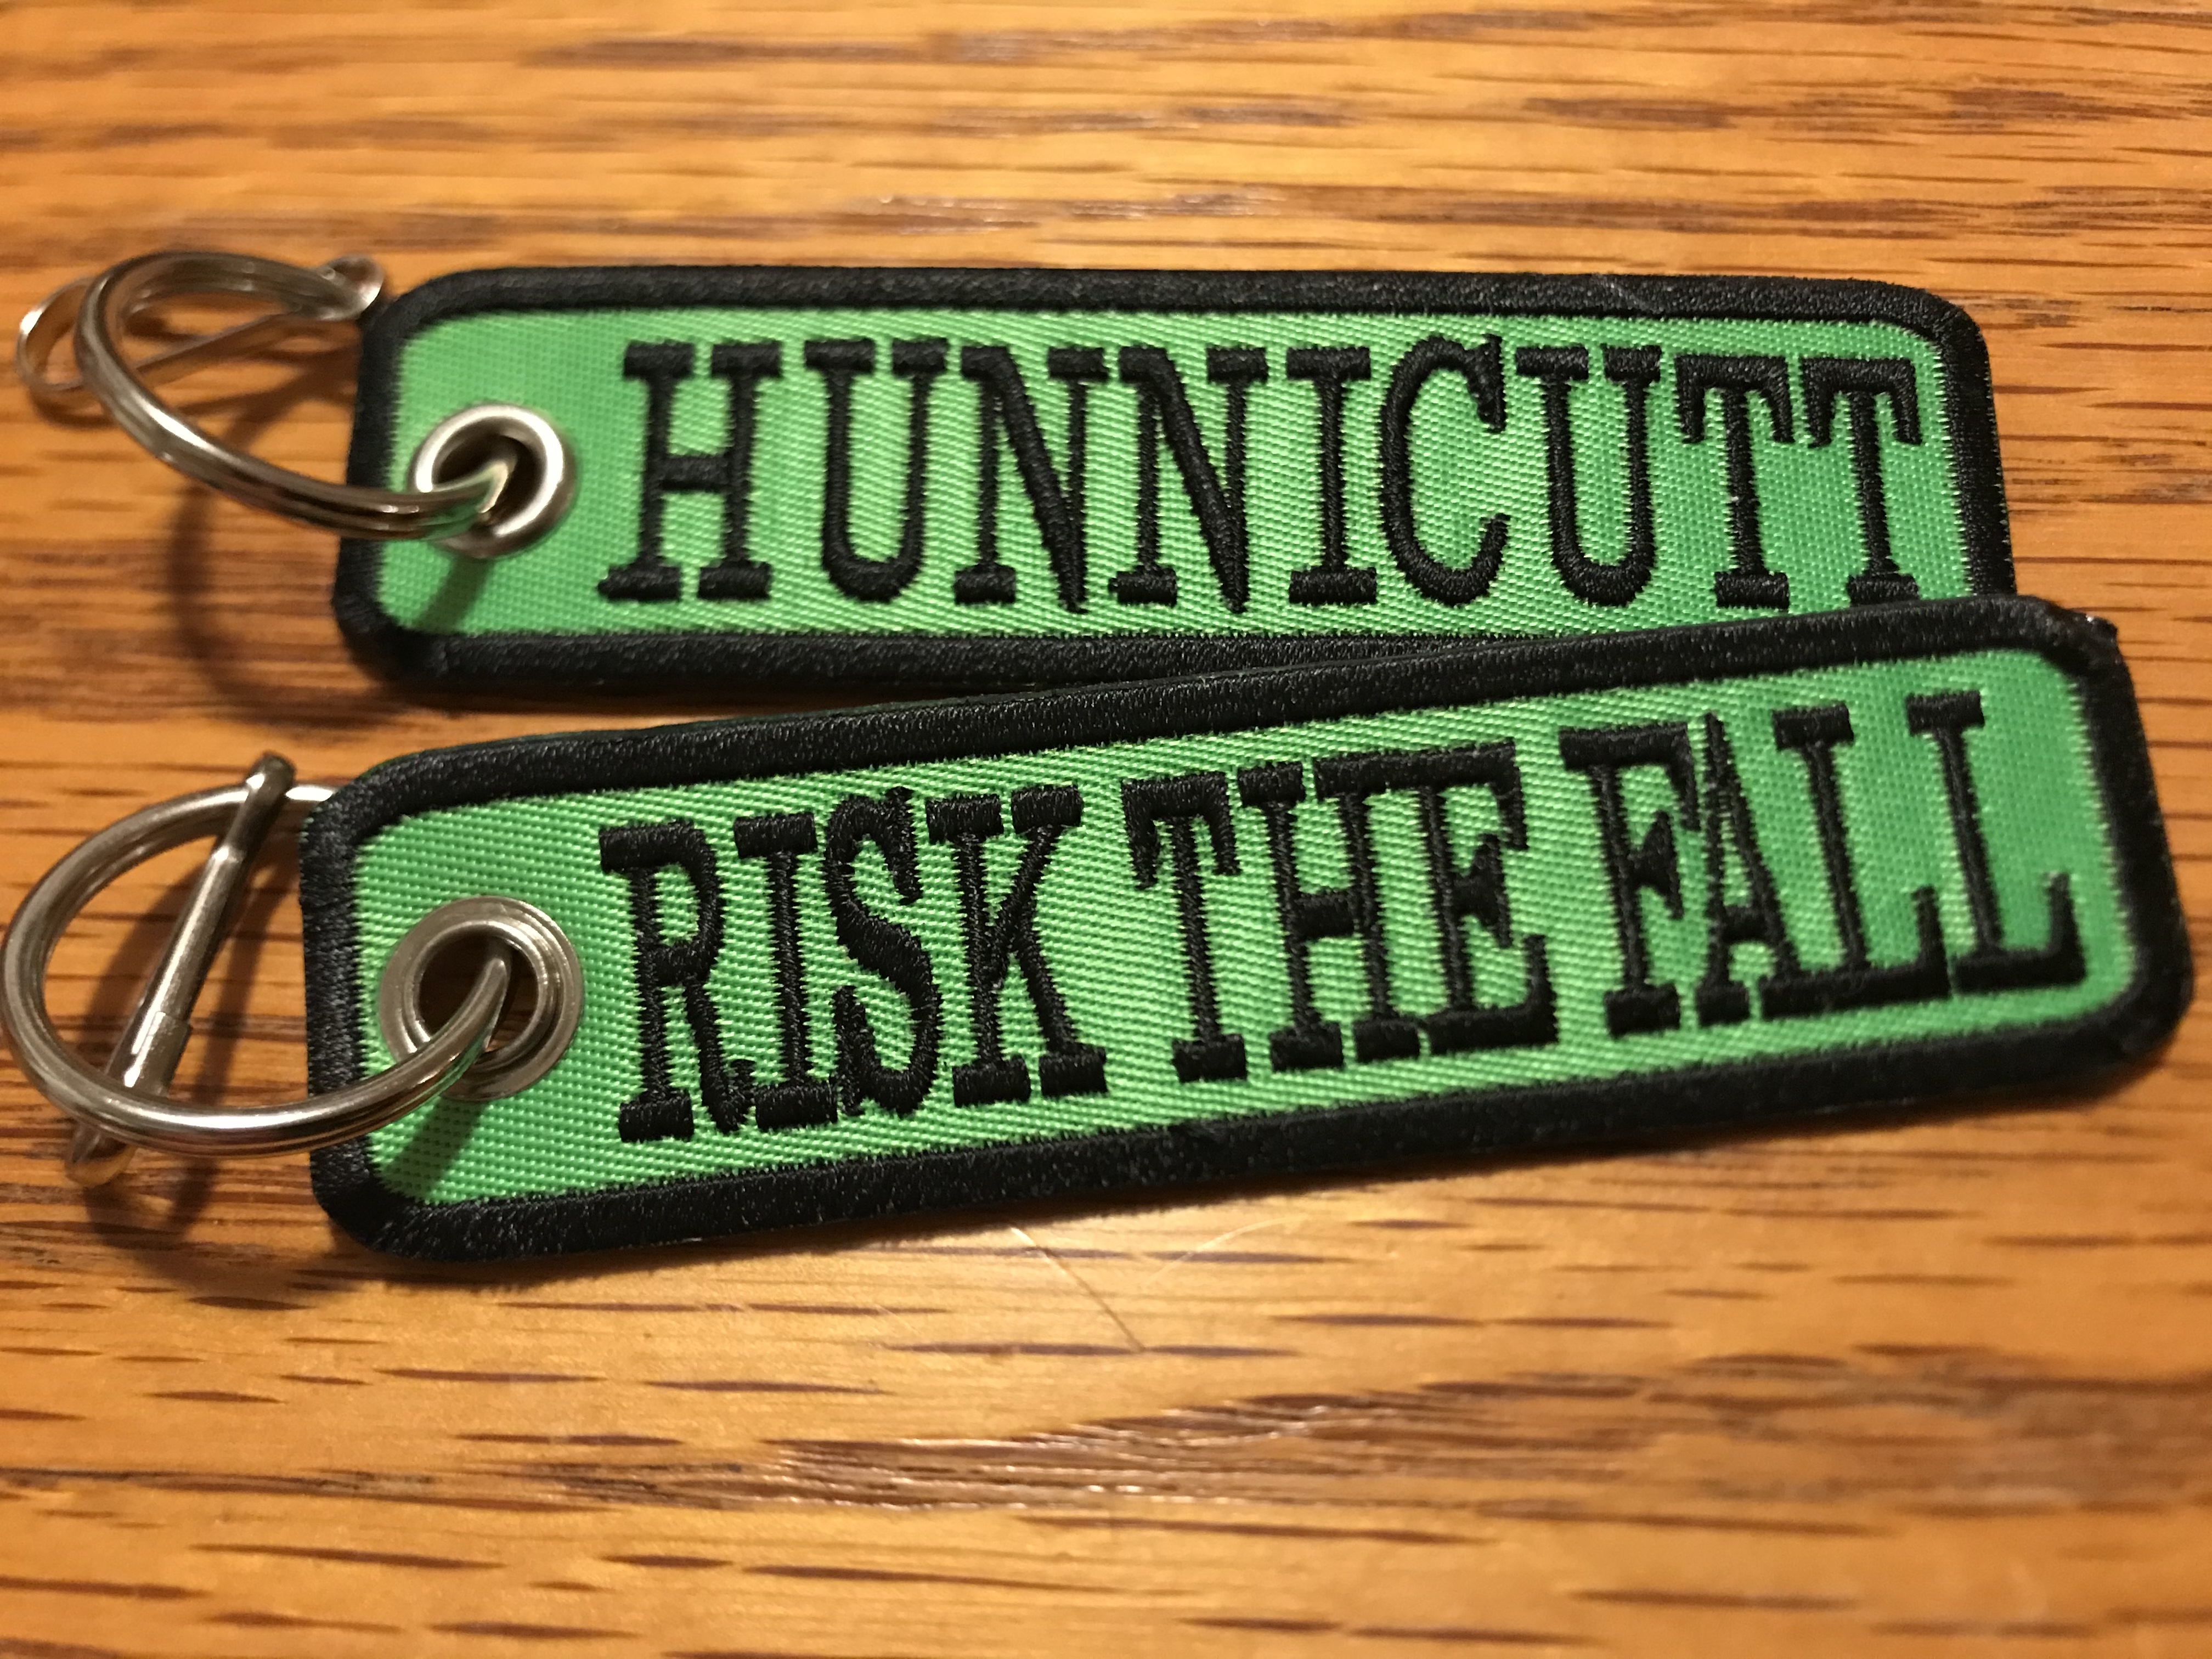 NEW!!! Risk the Fall Keychains